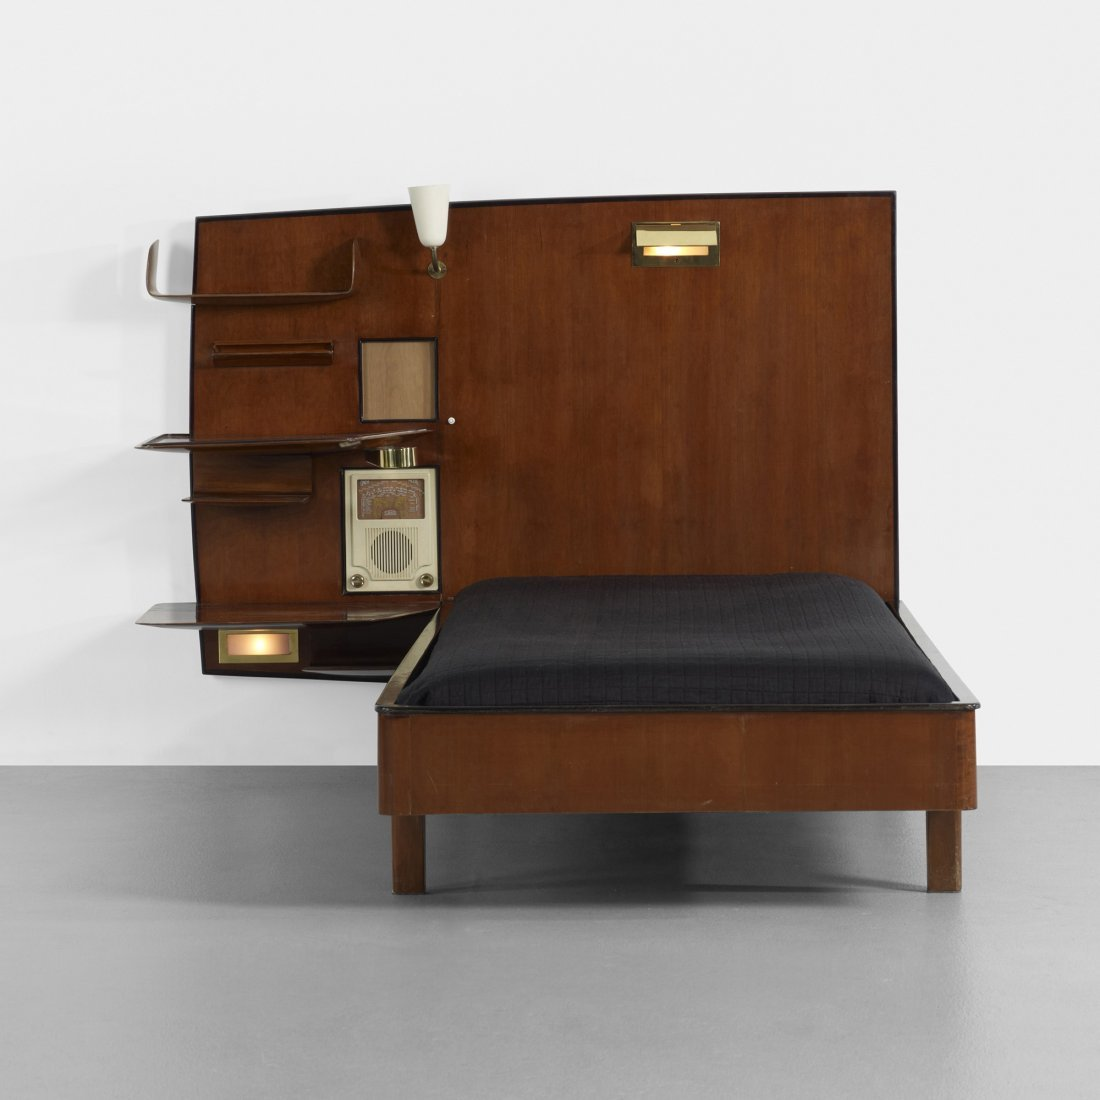 Naples Bedroom Furniture Gio Ponti Bed From The Royal Hotel Naples Giordano Chiesa Italy